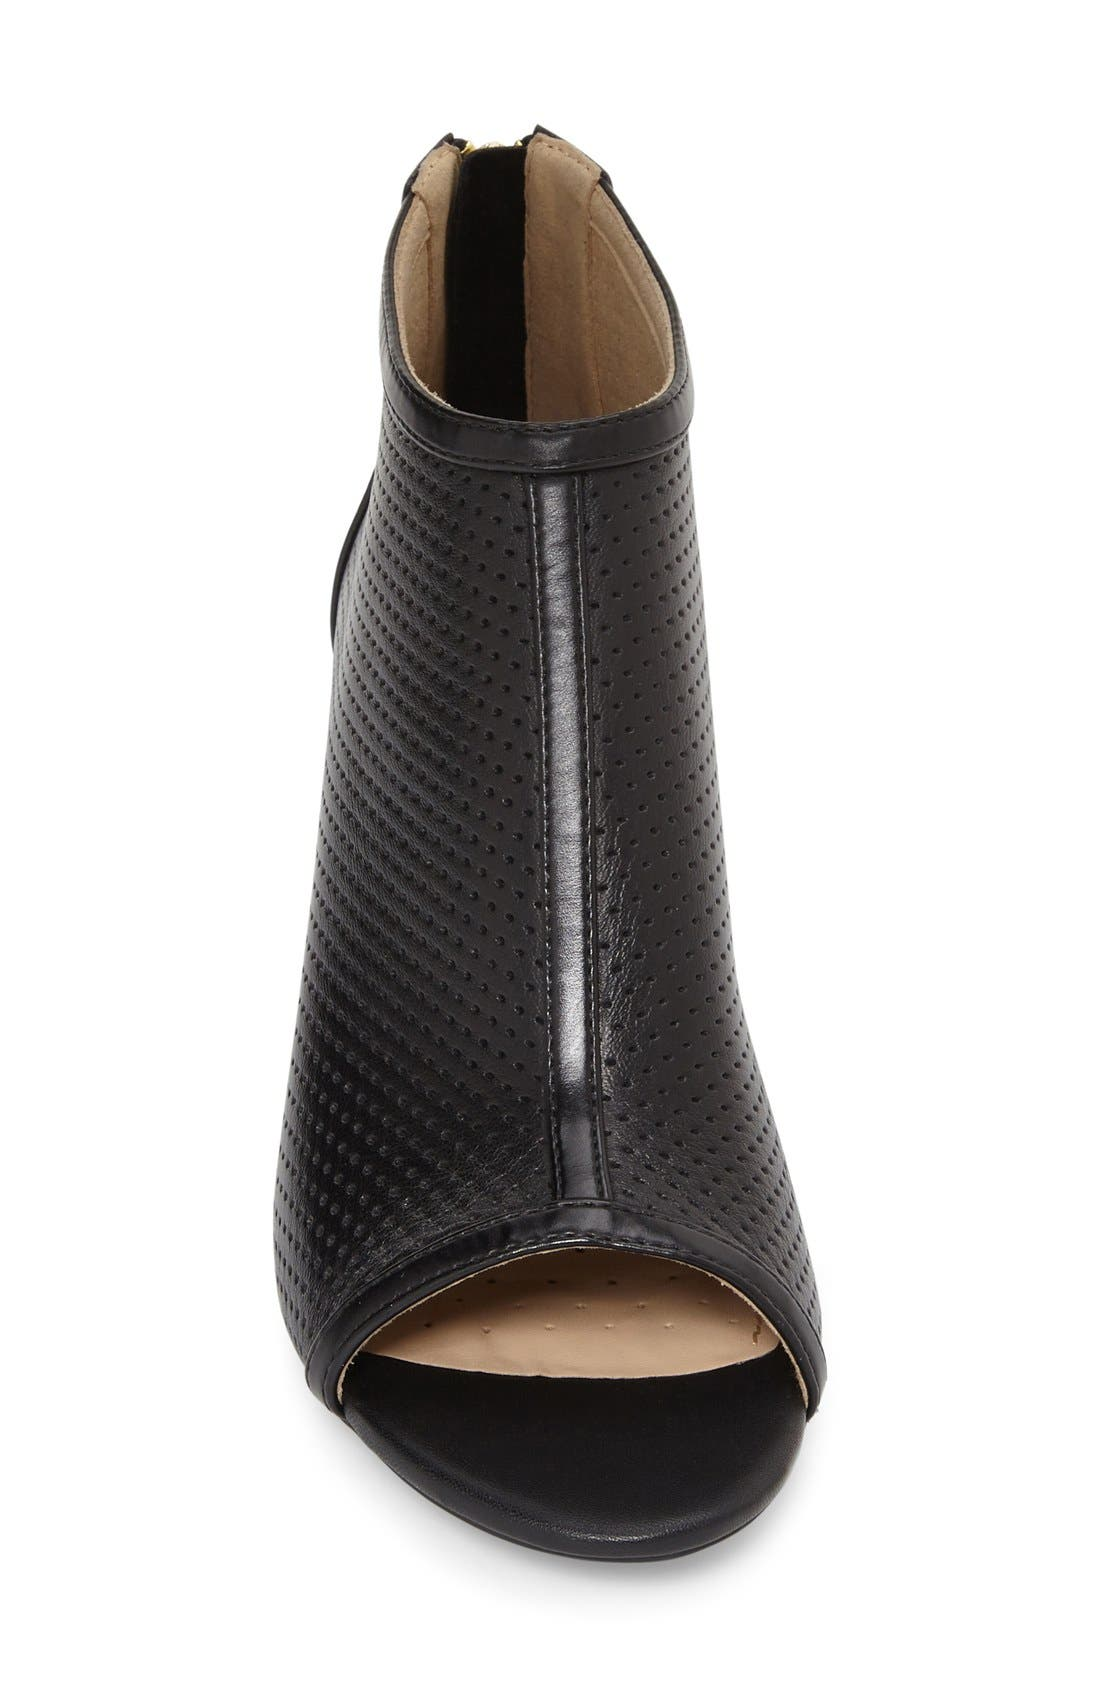 Alternate Image 3  - Geox 'Audie' Peep Toe Bootie (Women)